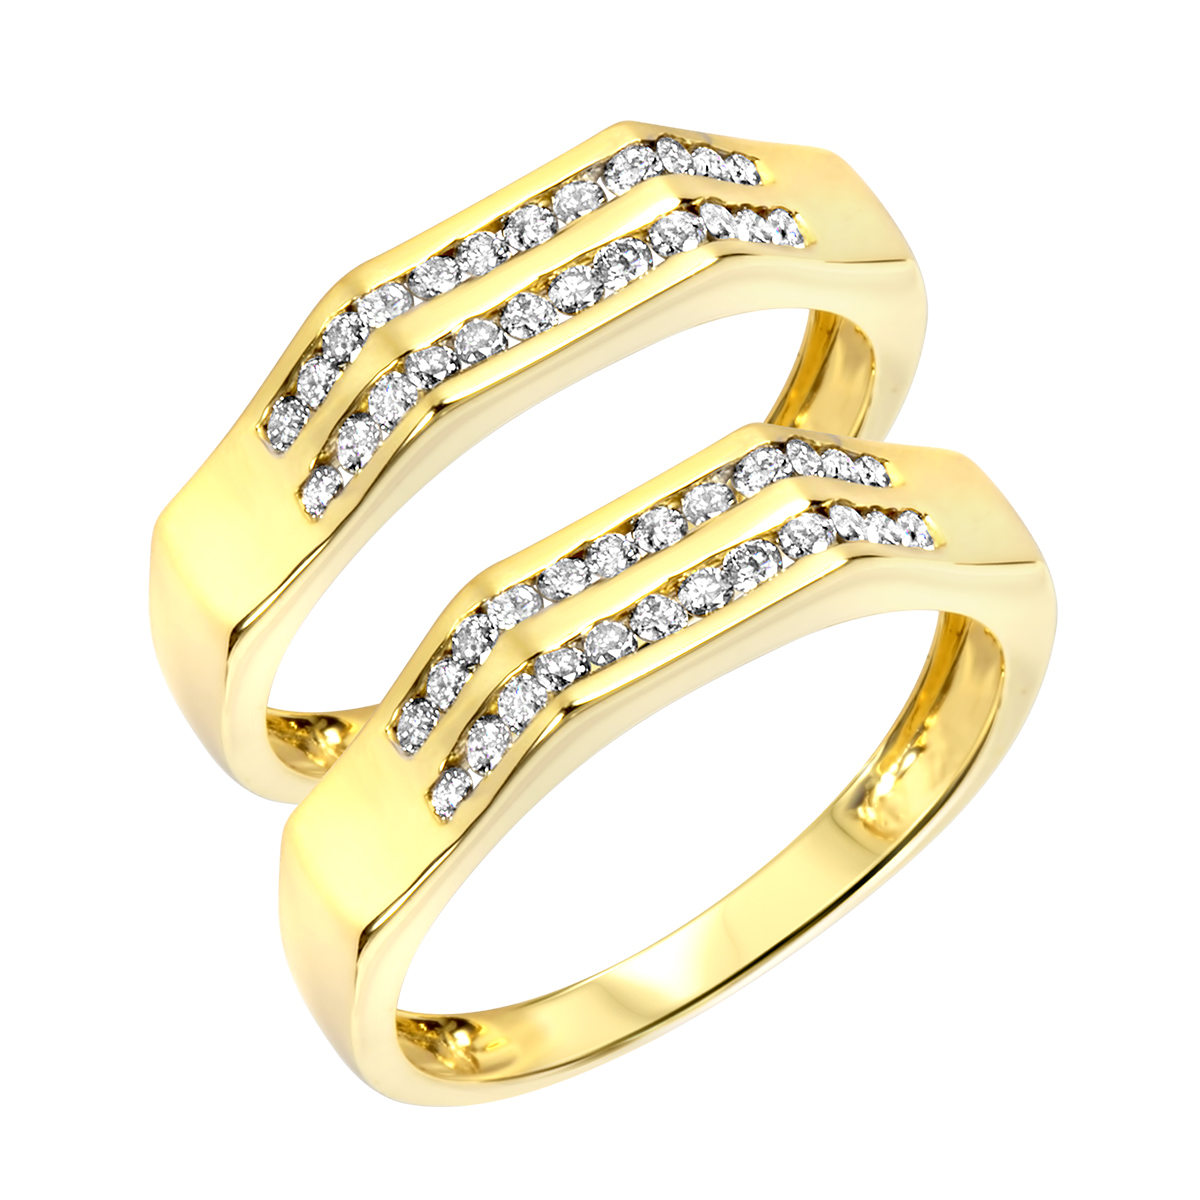 1/2 CT. T.W. Round Cut Ladies Same Sex Wedding Band Set 14K Yellow Gold- Size 8